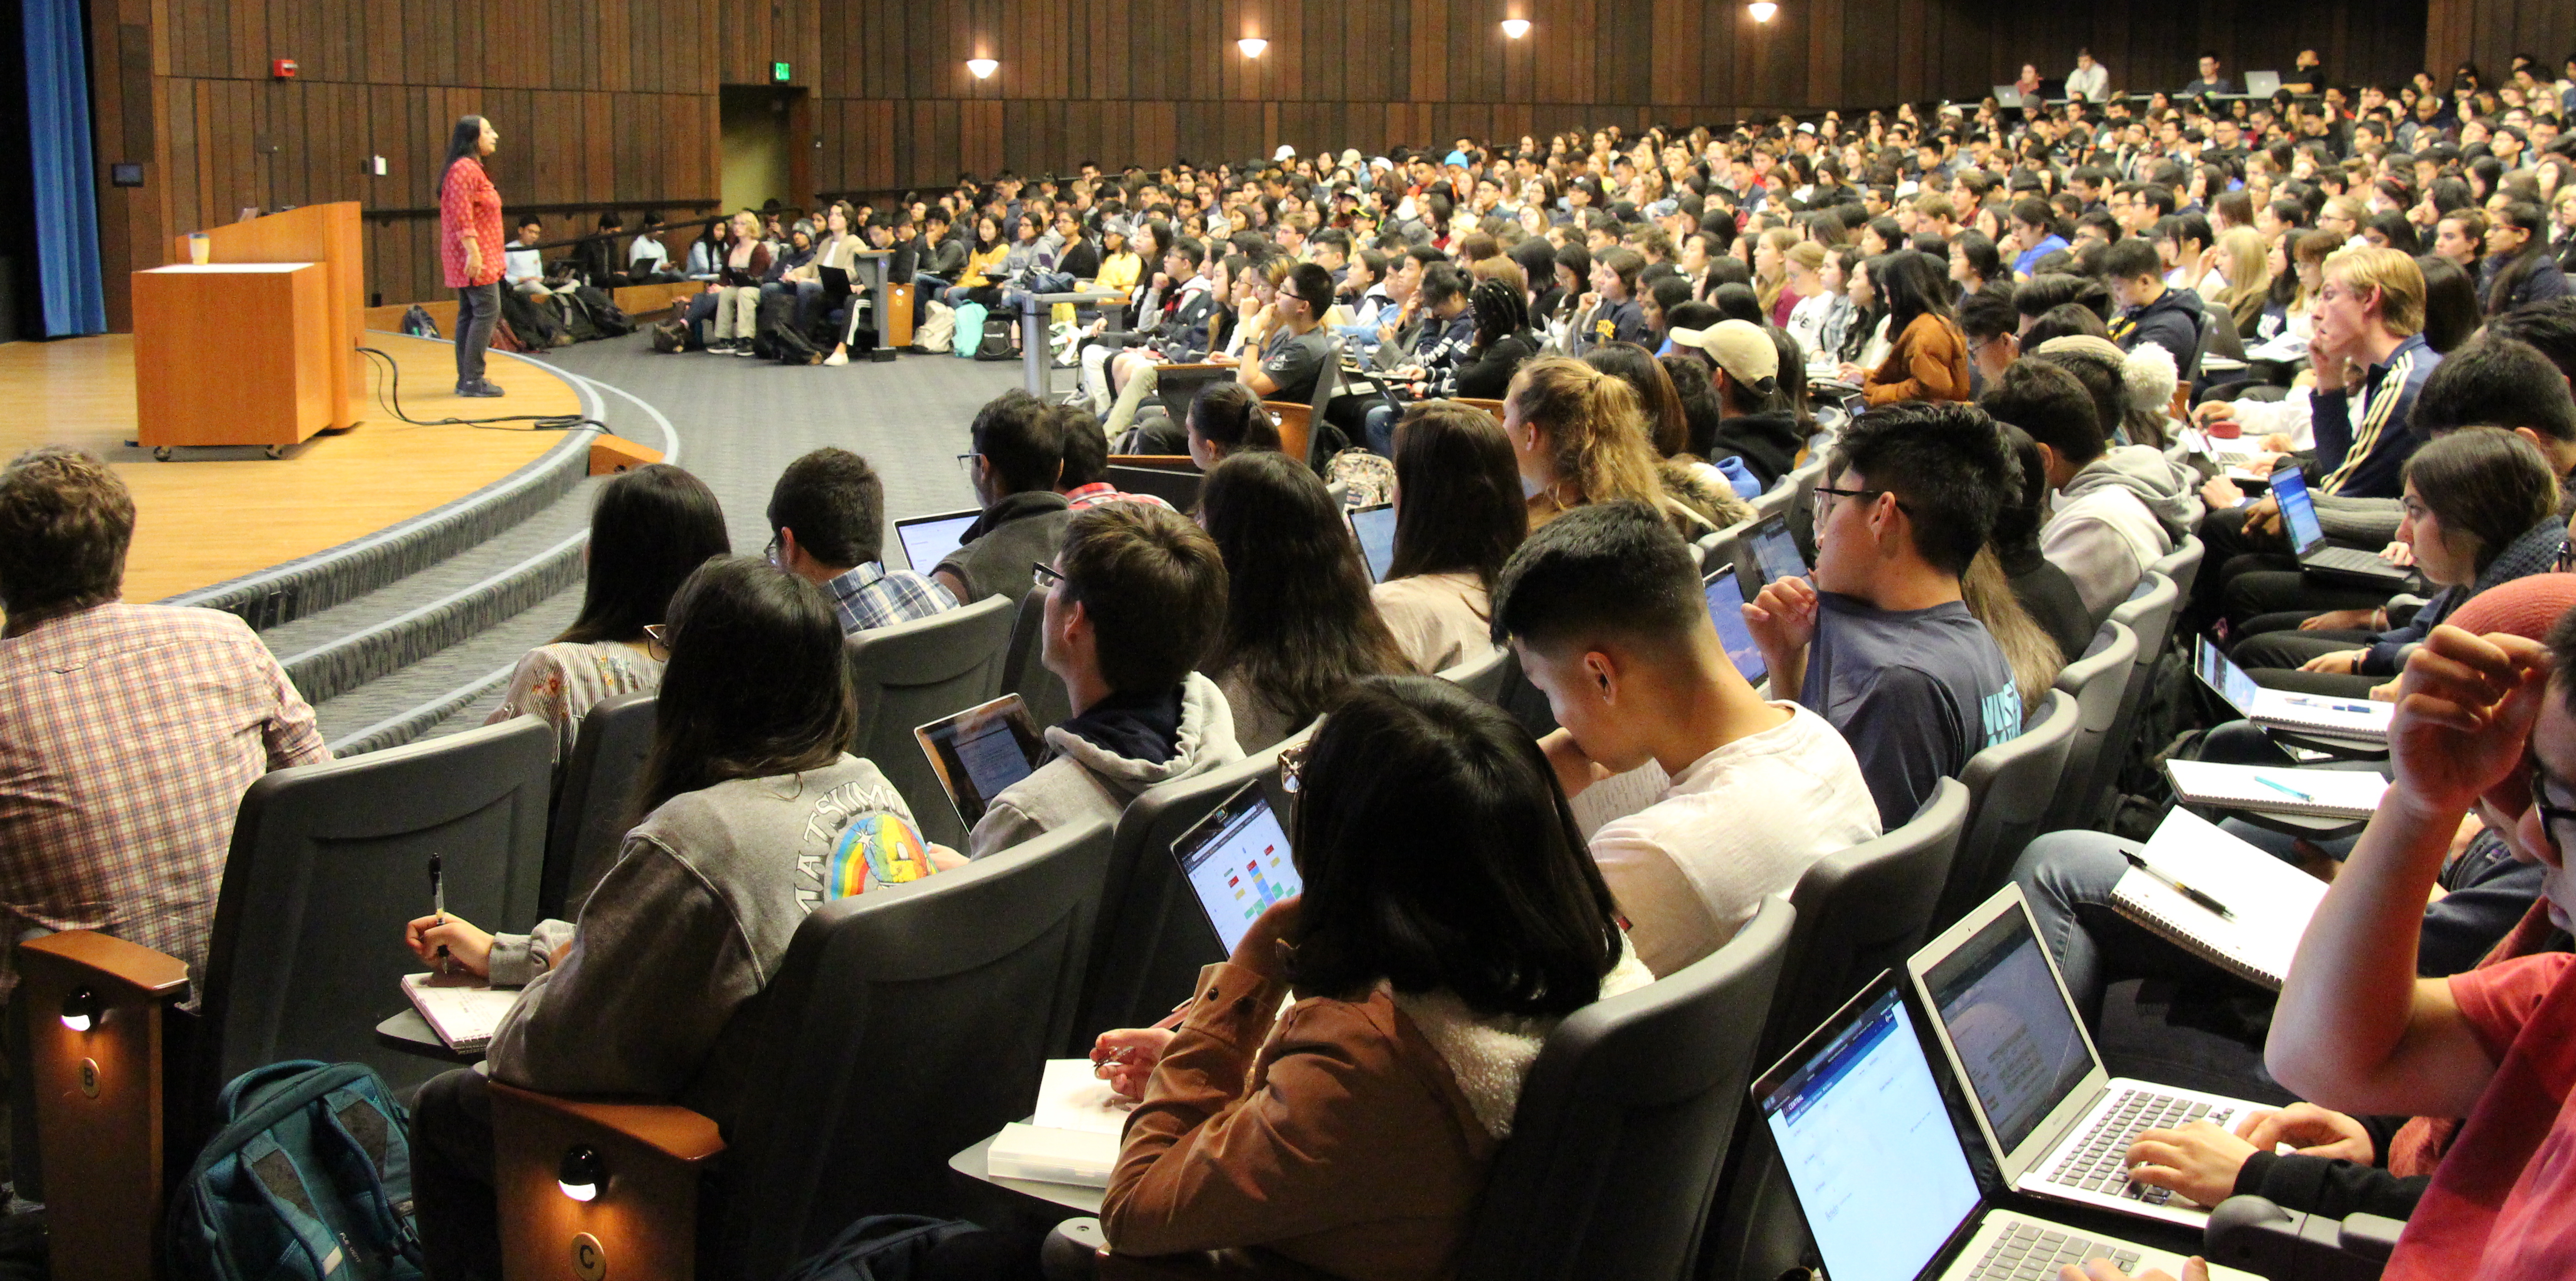 Photo of a full lecture hall, taken from the left side of the back